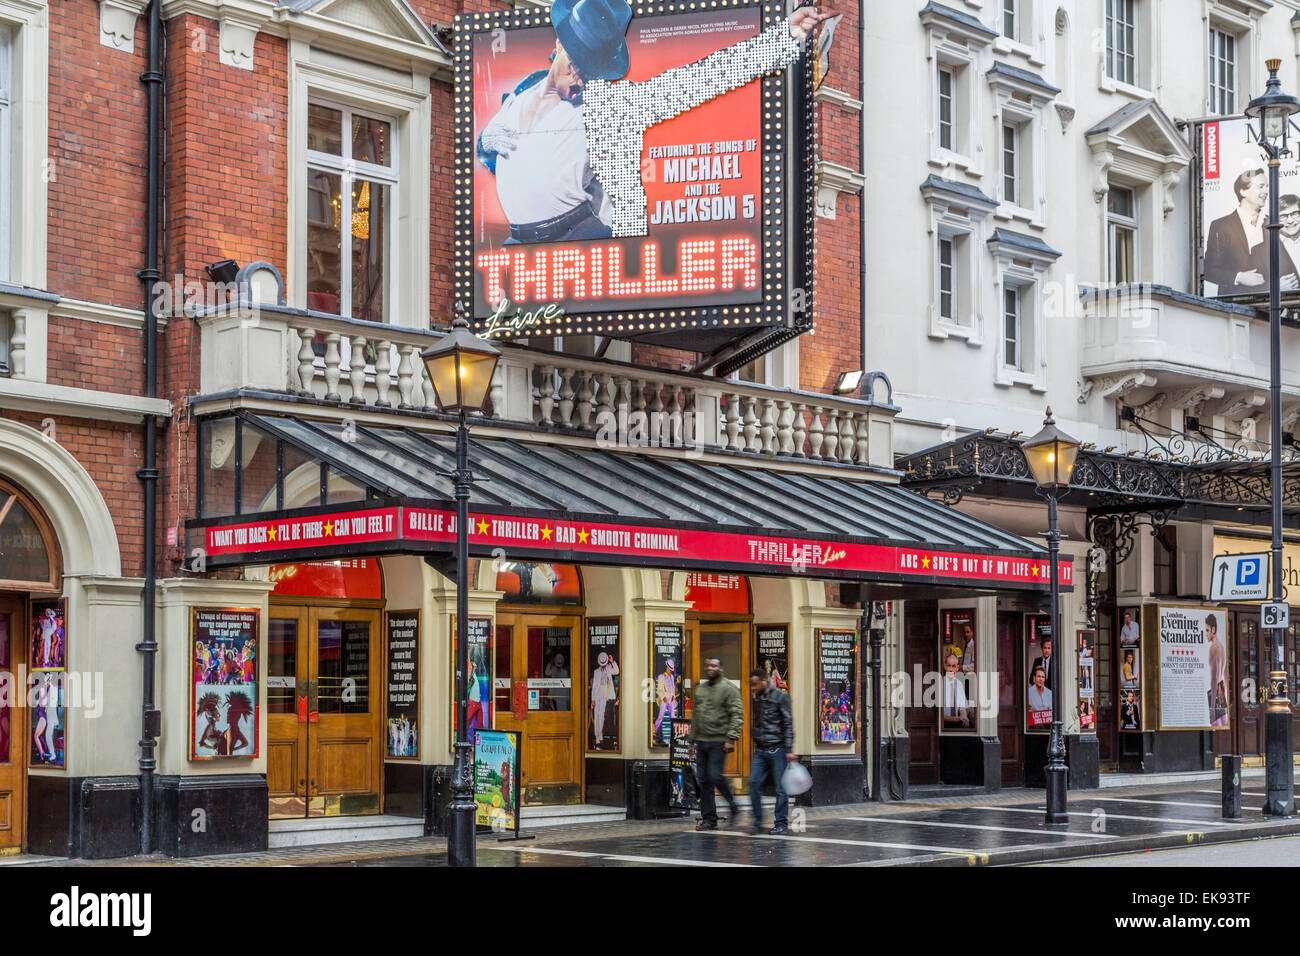 A Landscape image of Thriller Live the musical playing at the Lyric Theatre  Shaftesbury Avenue, London - Stock Image